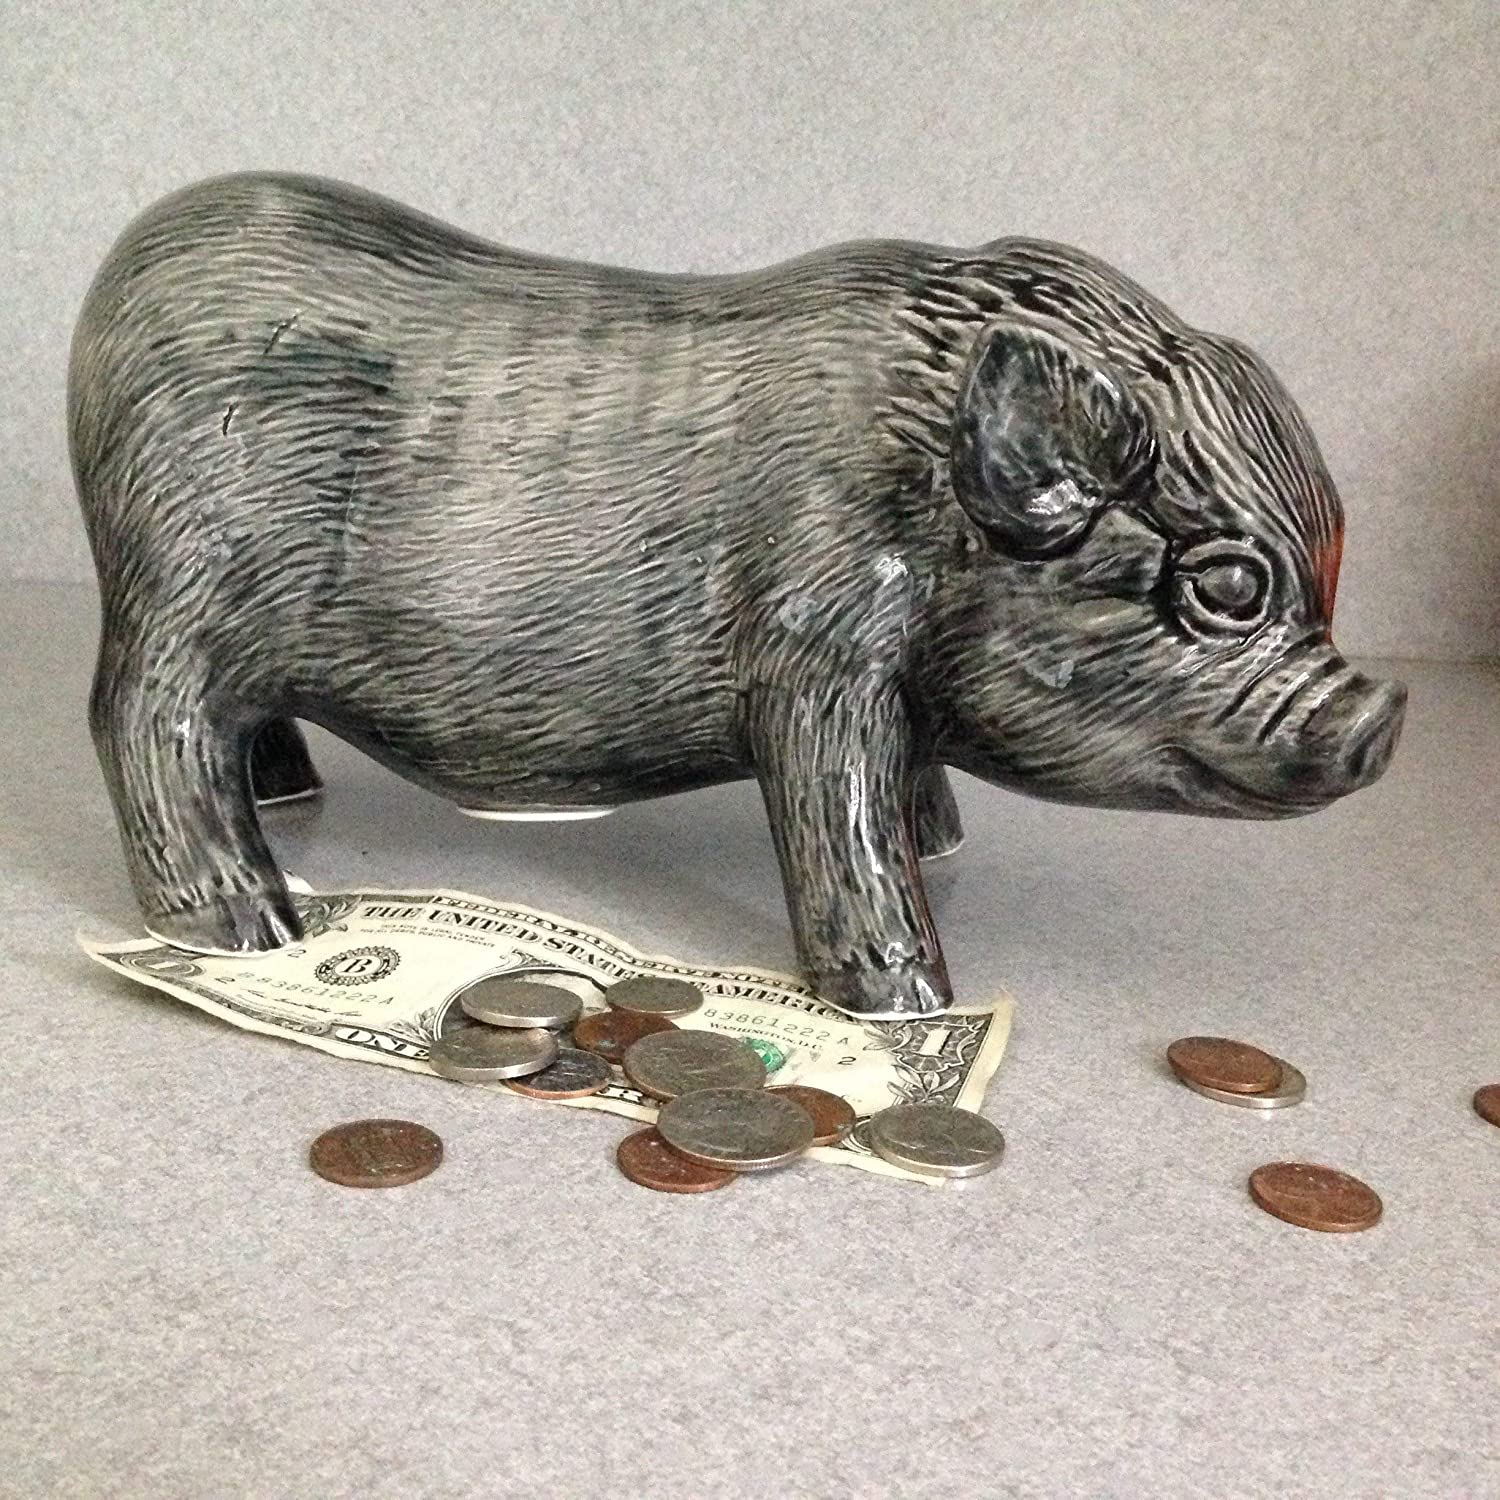 Pig Bank Pot belly pig Bank with stopper black glaze Ceramic money bank